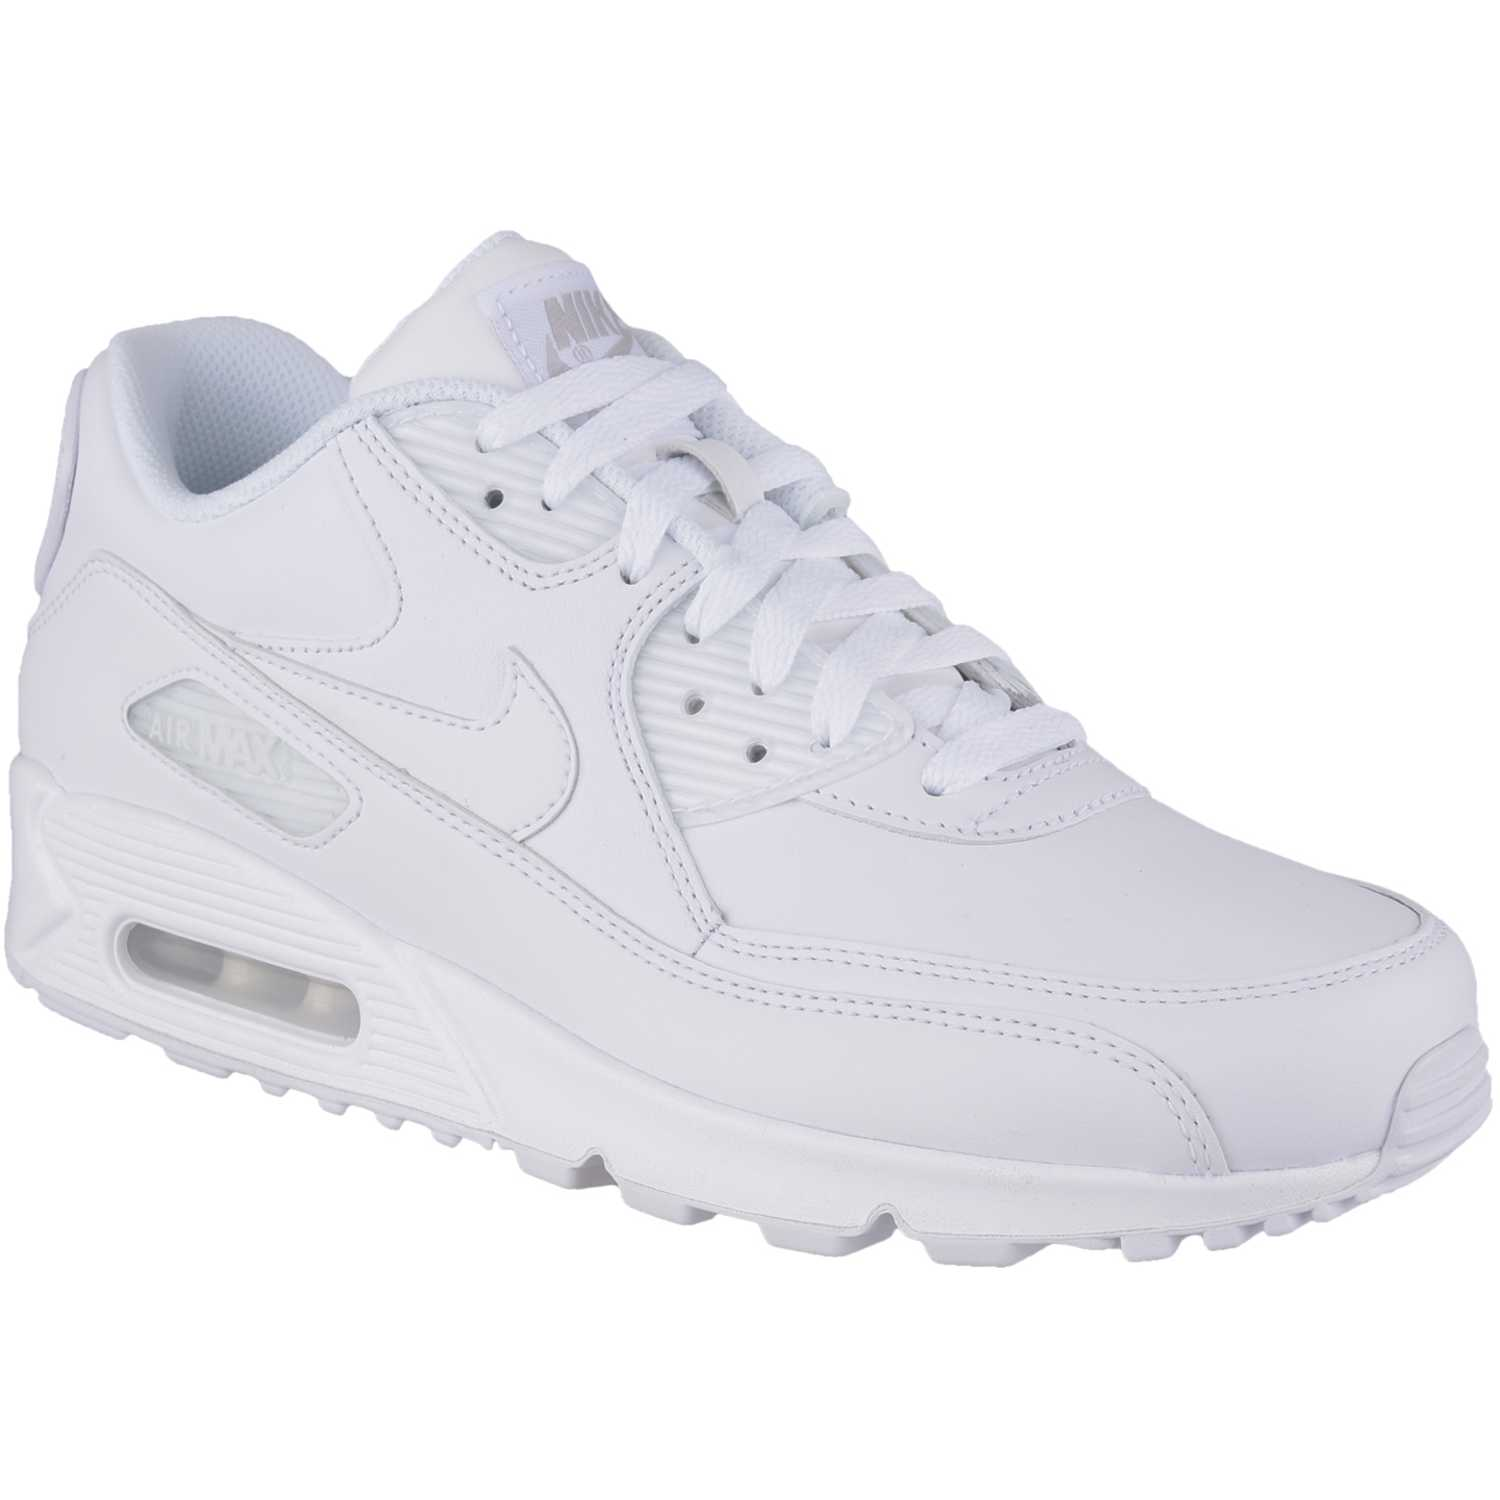 separation shoes 7f4d3 bbd26 Zapatilla de Hombre Nike Blanco air max 90 leather | platanitos.com